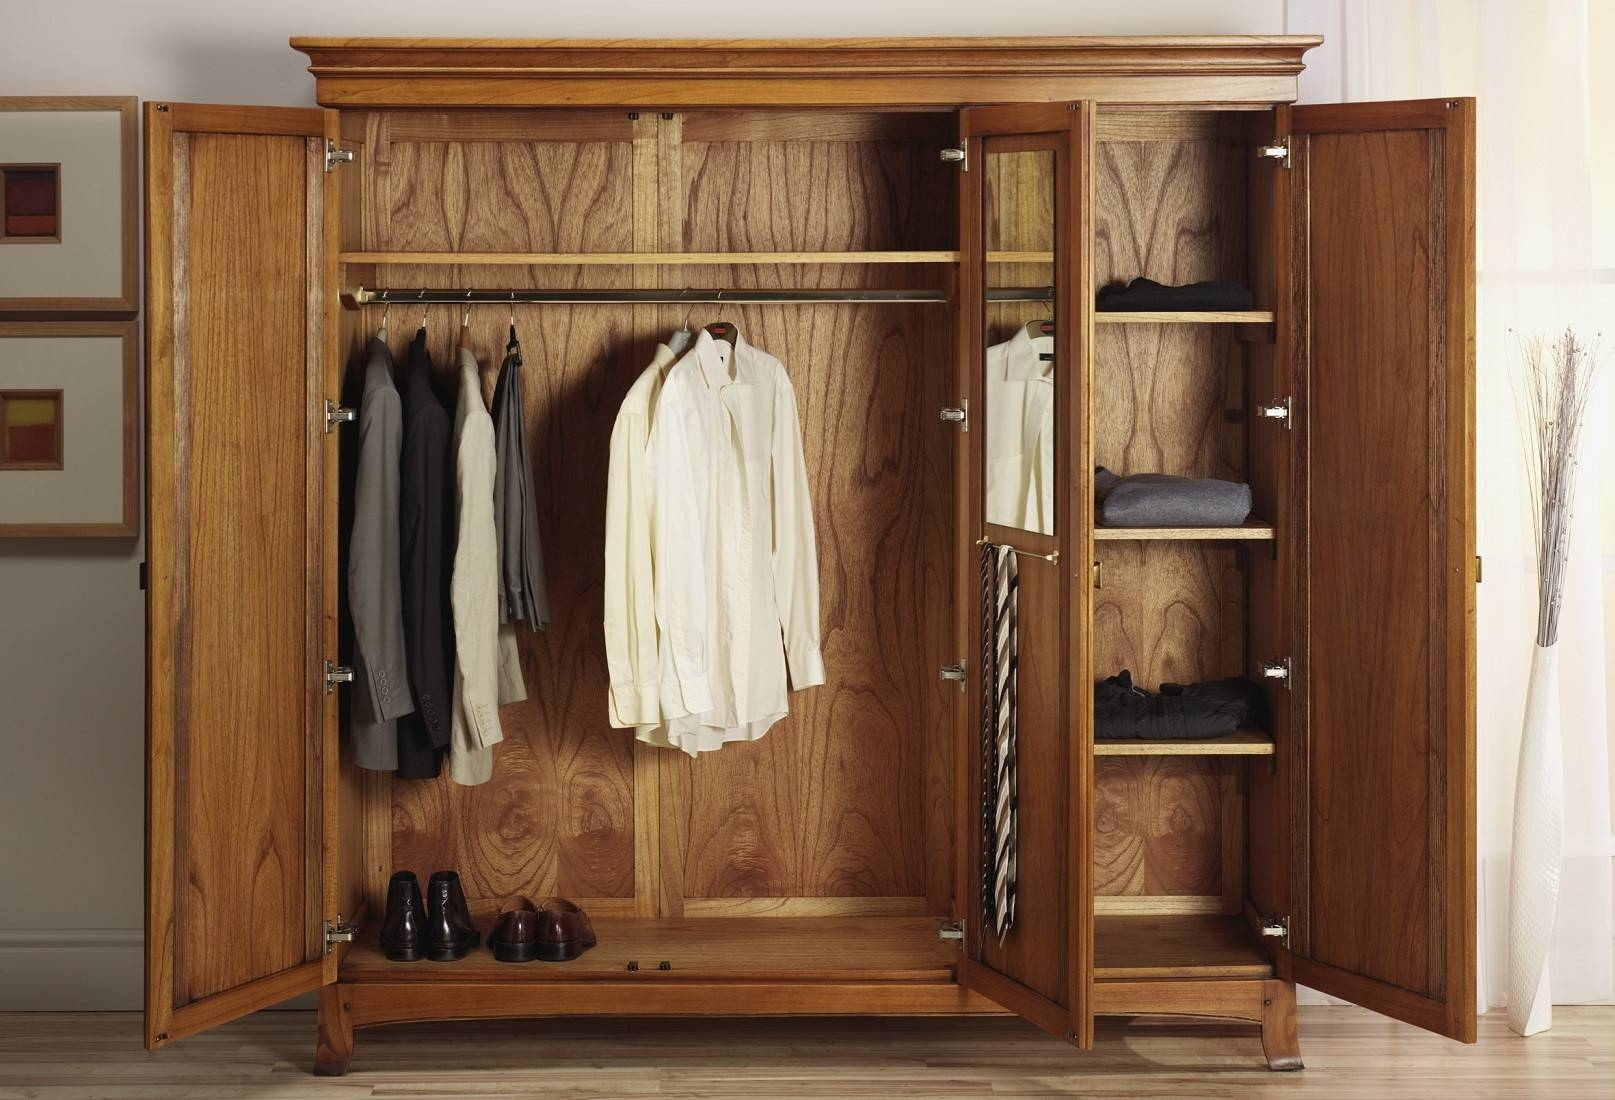 Lincoln Solid Ash 3 Door Triple Wardrobe | Oak Furniture Uk with regard to Oak Wardrobe With Drawers and Shelves (Image 18 of 30)